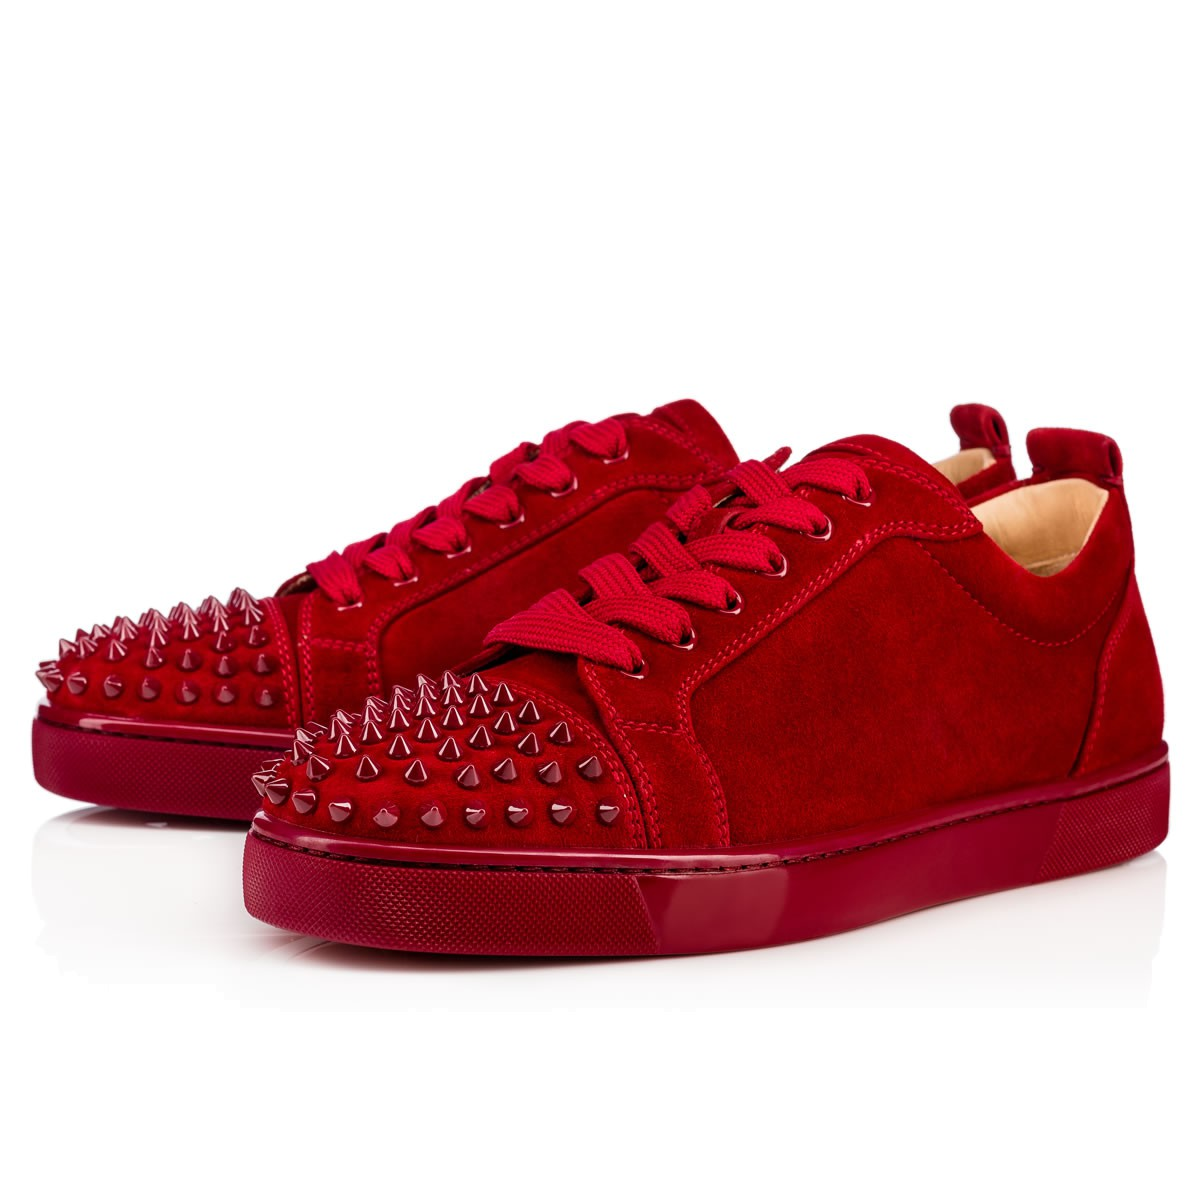 d6b83c7cf36 Christian Louboutin Louis Junior Spikes Flat Suede Sneakers In Red ...